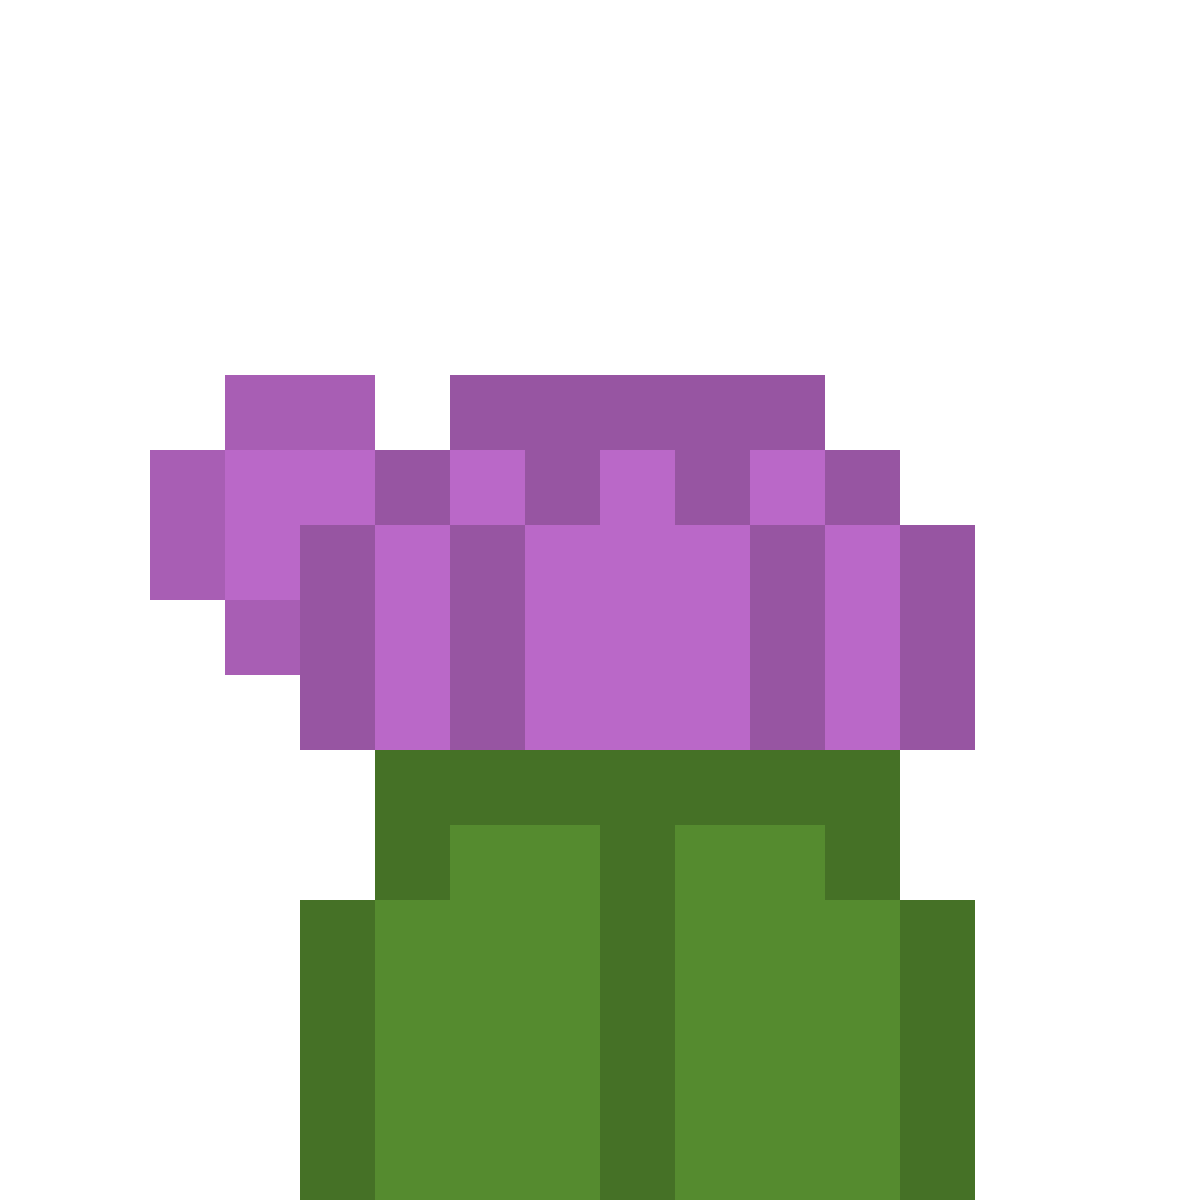 16x16 plant by Jrwolfen